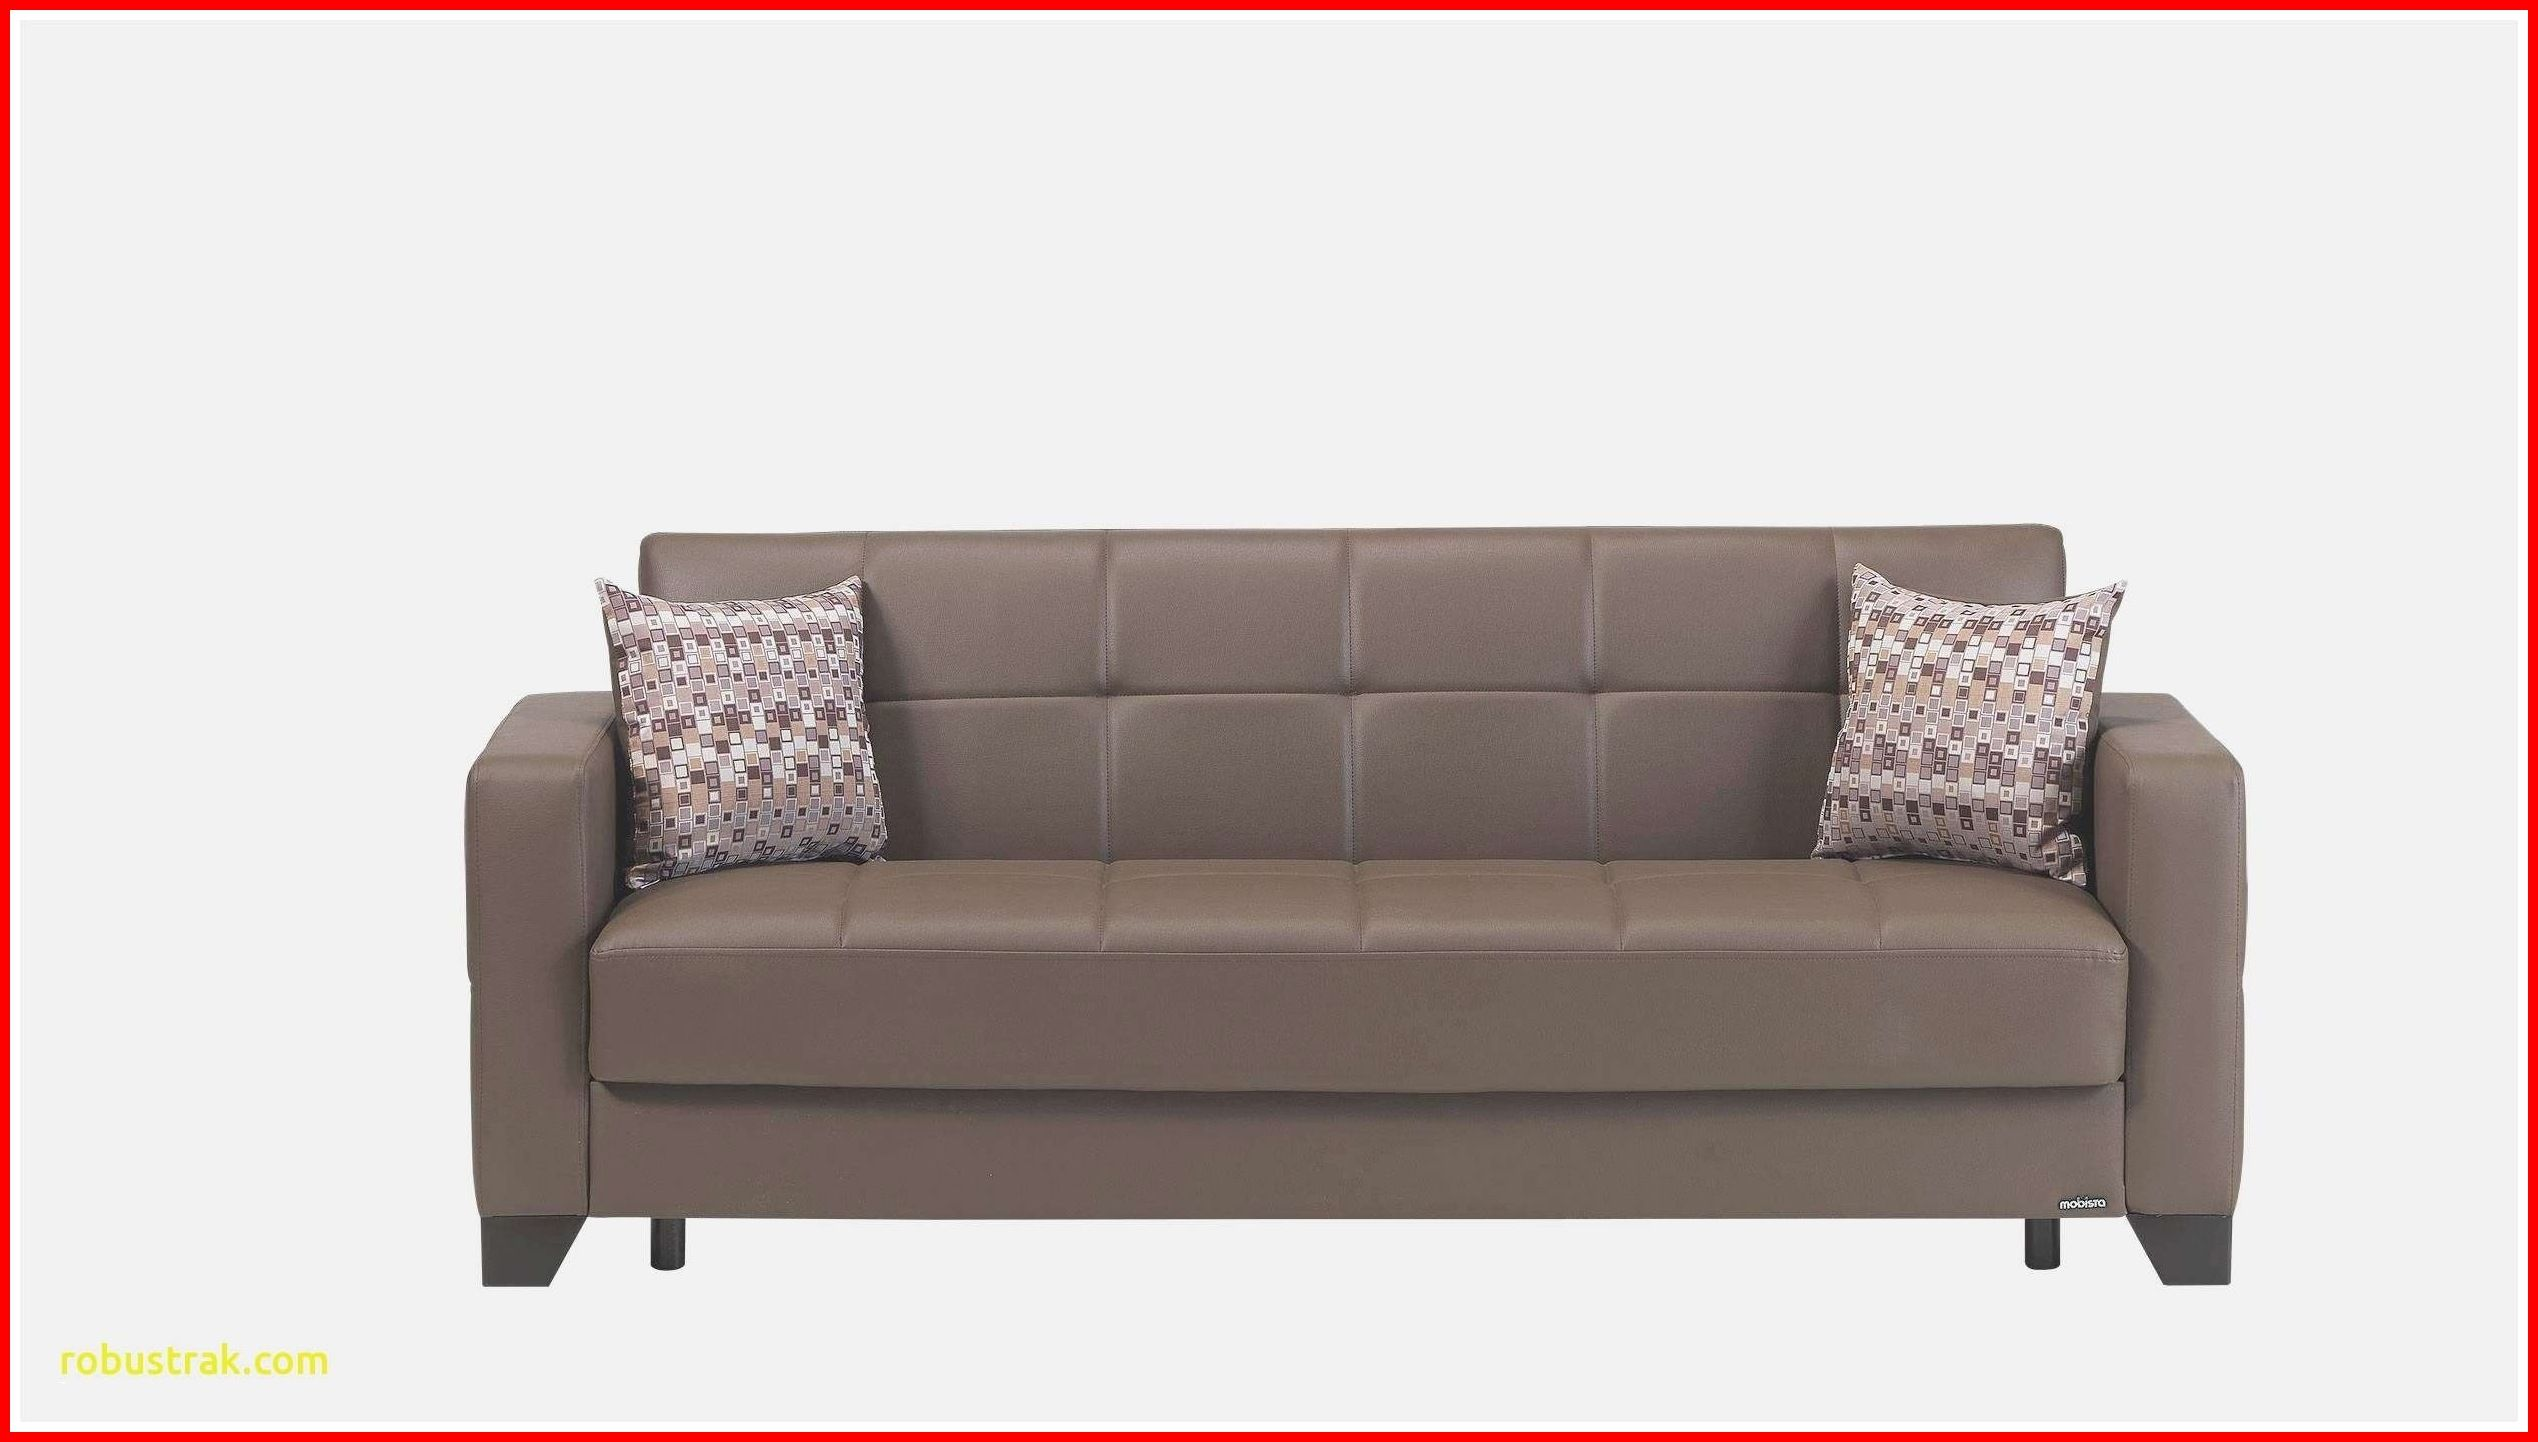 86 Reference Of Small Sectional Sofa Reddit In 2020 Sofa Bed With Storage Cheap Sectional Couches Sectional Sofa